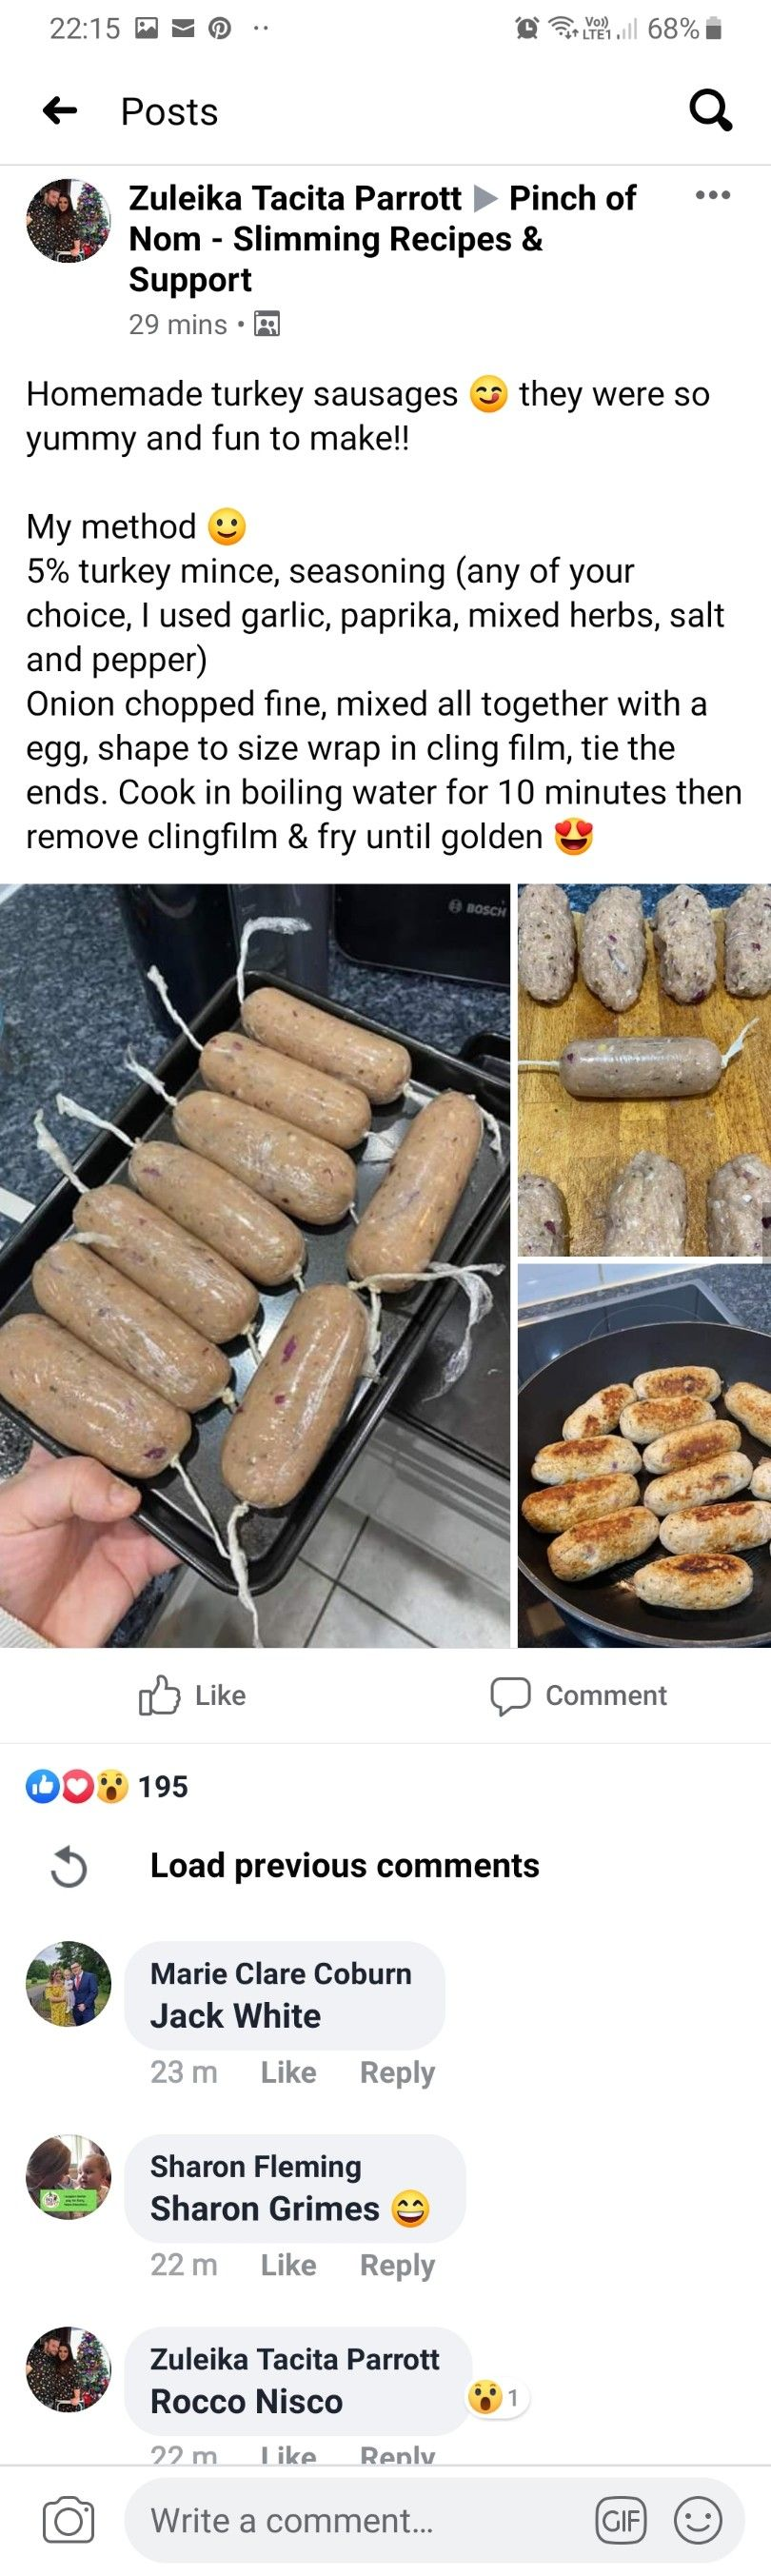 Pin by Vicki Burrows on slimming world in 2020 | Homemade ...